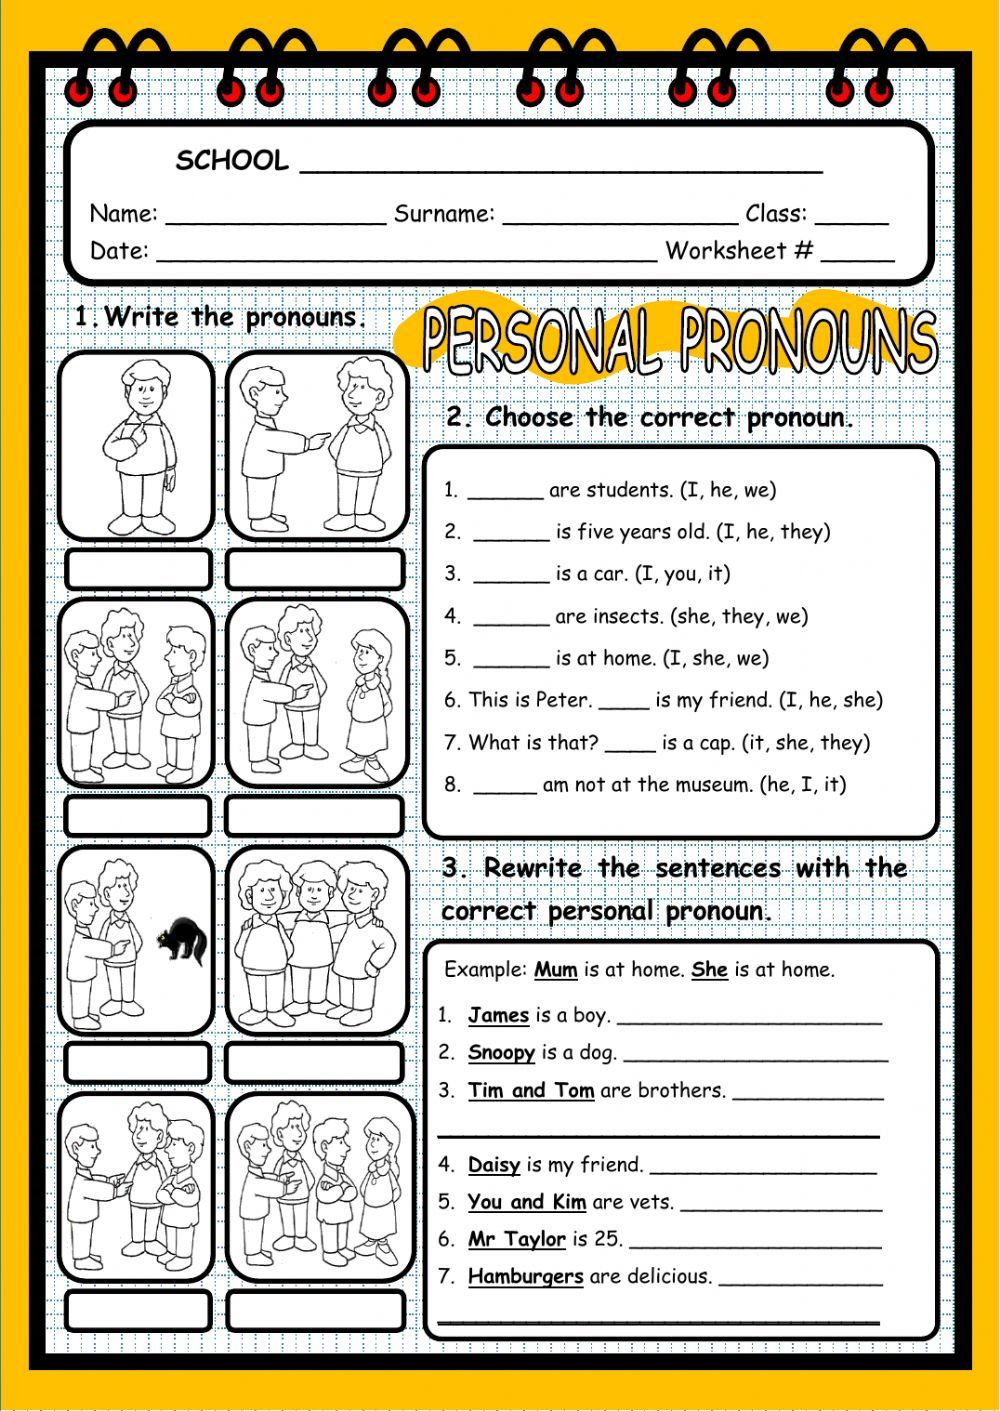 Personal pronouns interactive and downloadable worksheet